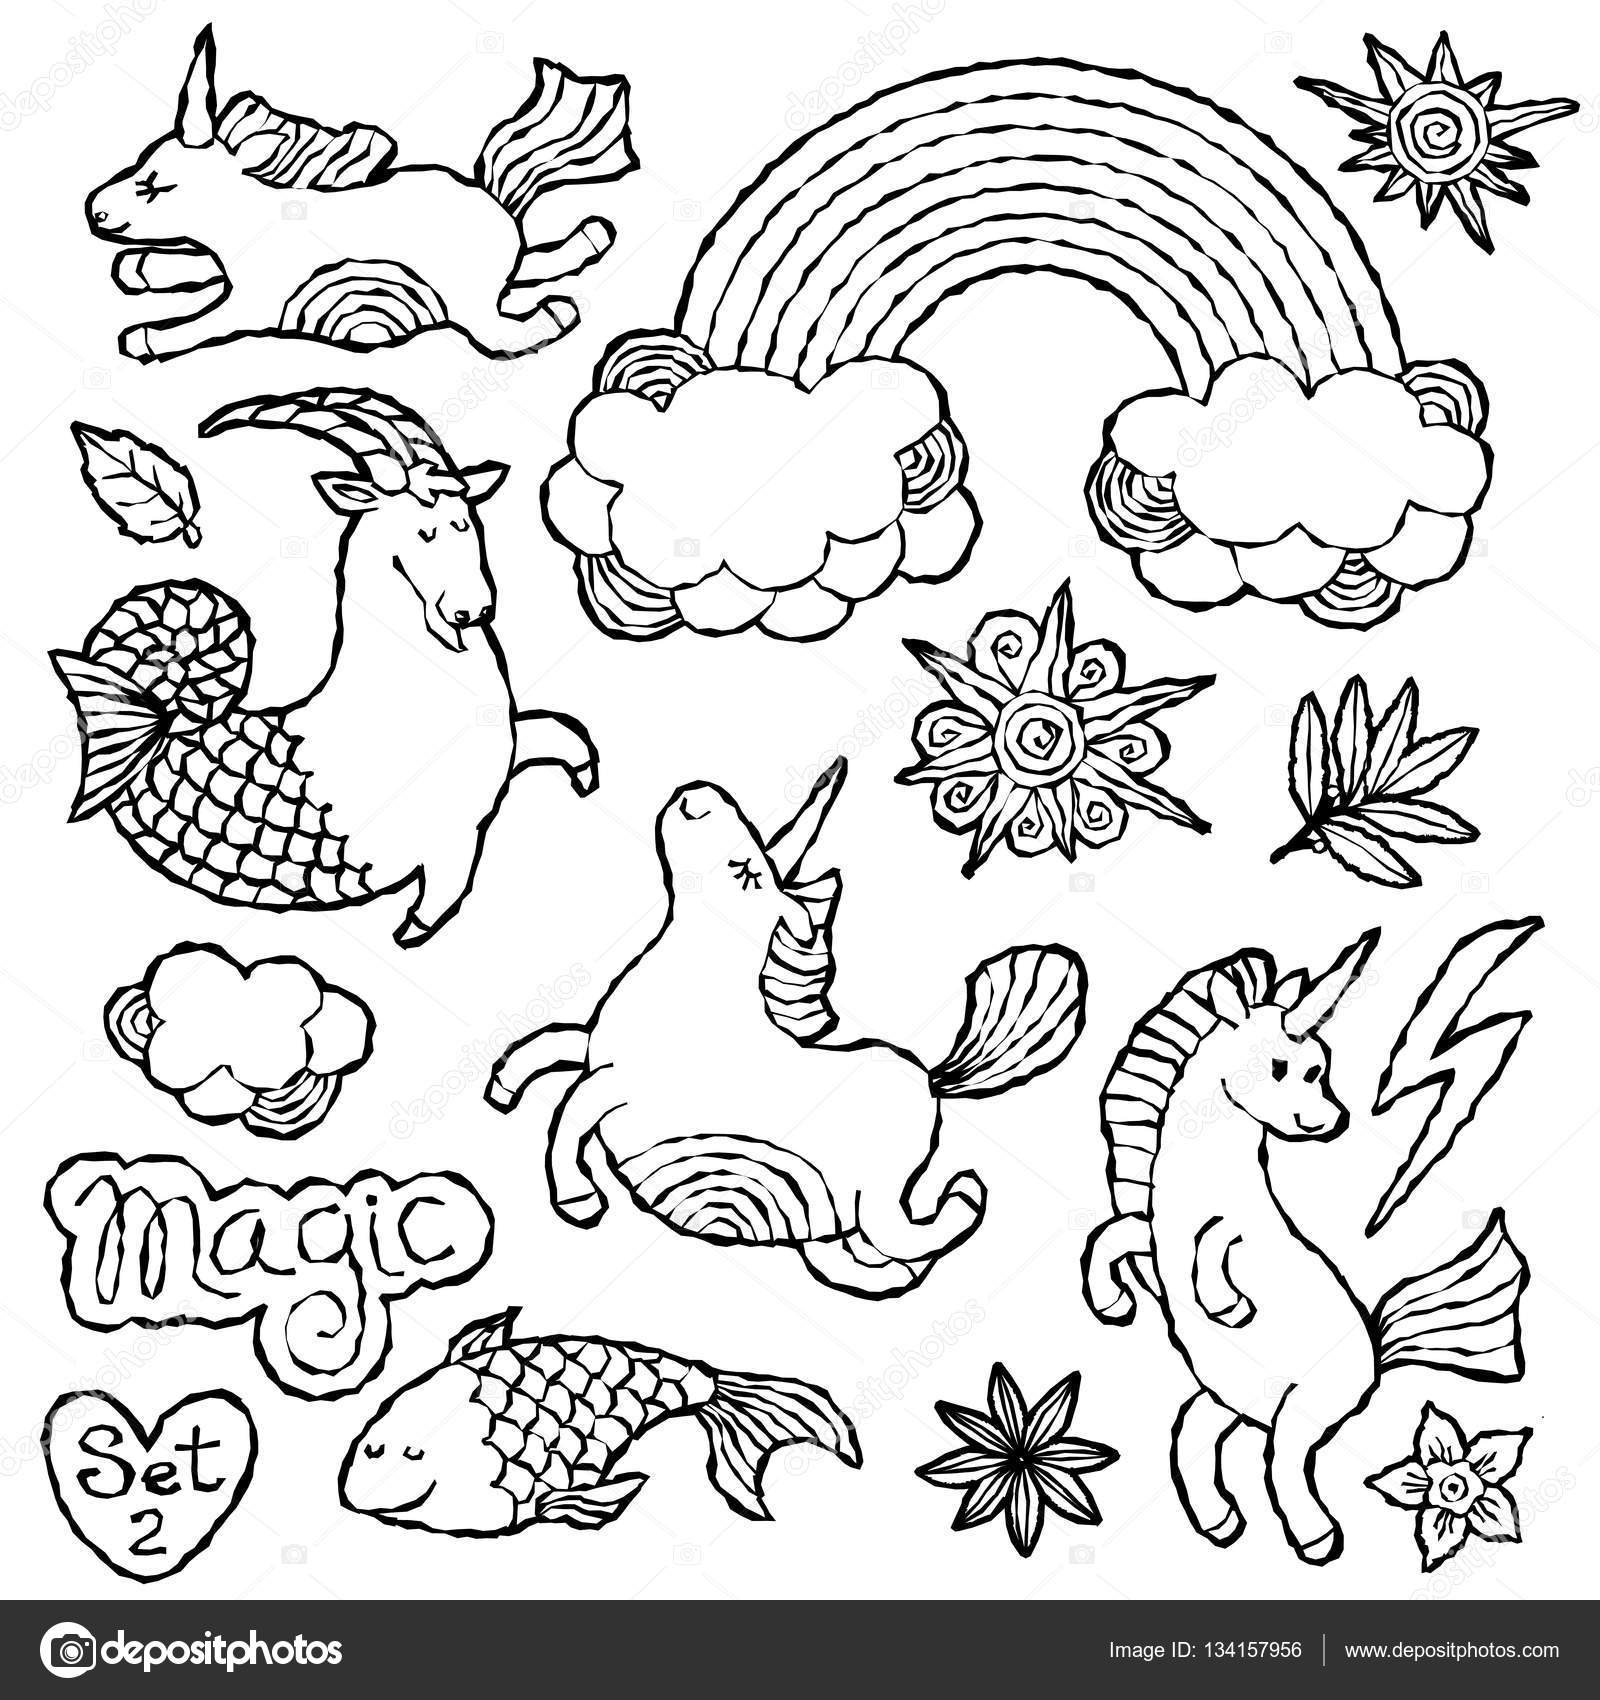 patchy patch coloring pages - remendo de moda preto e branco distintivo elementos nos